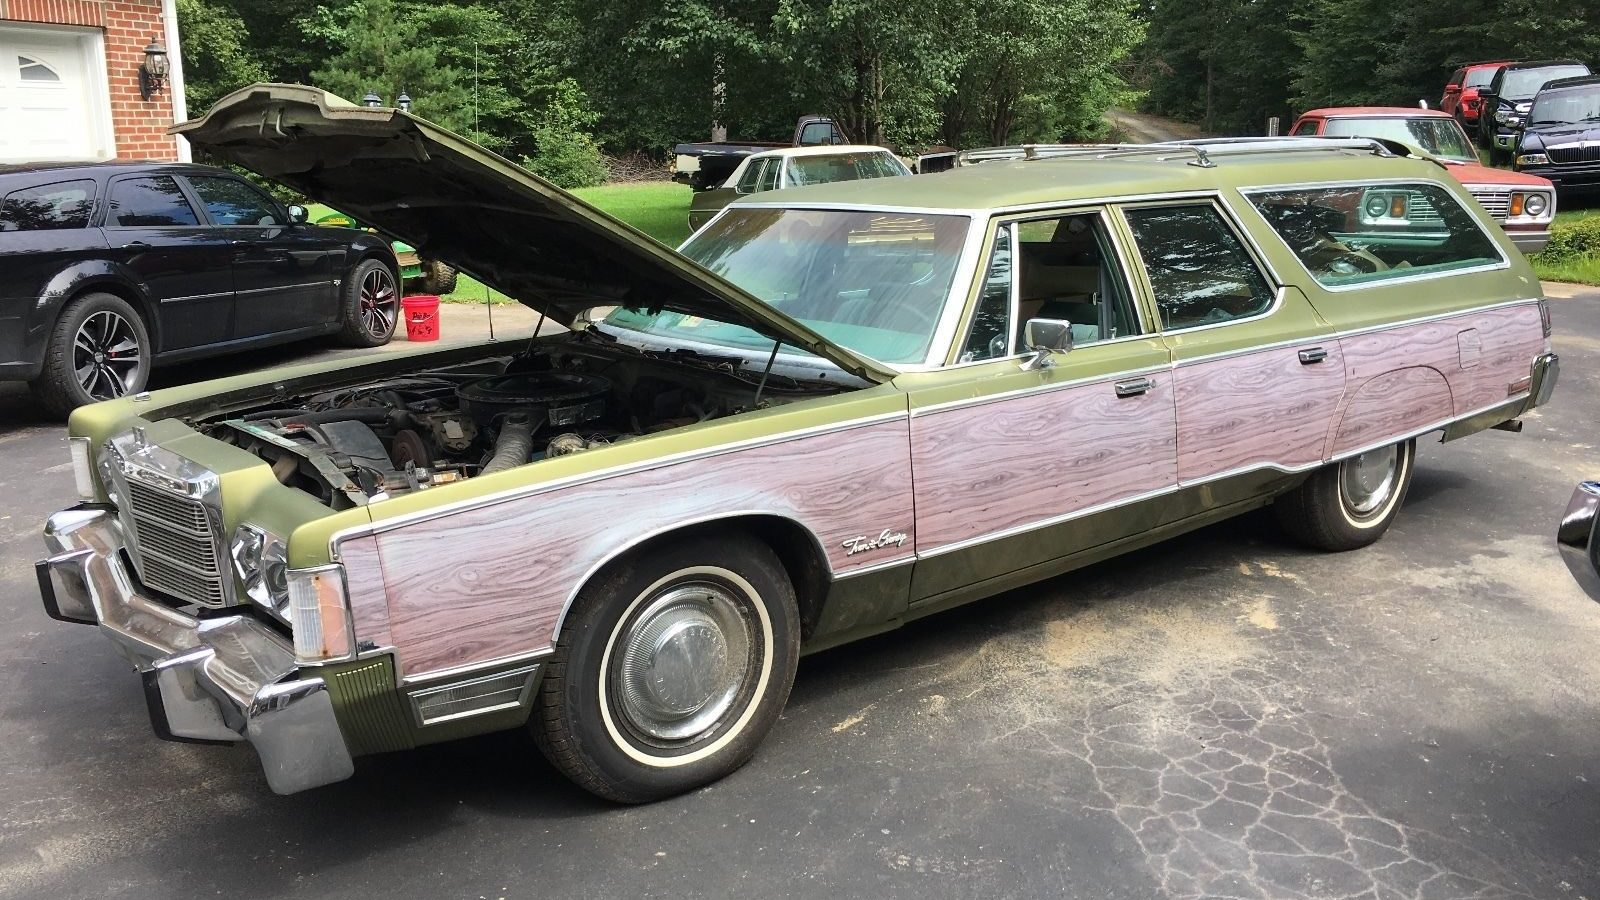 Family Truckster: 1977 Chrysler Town and Country